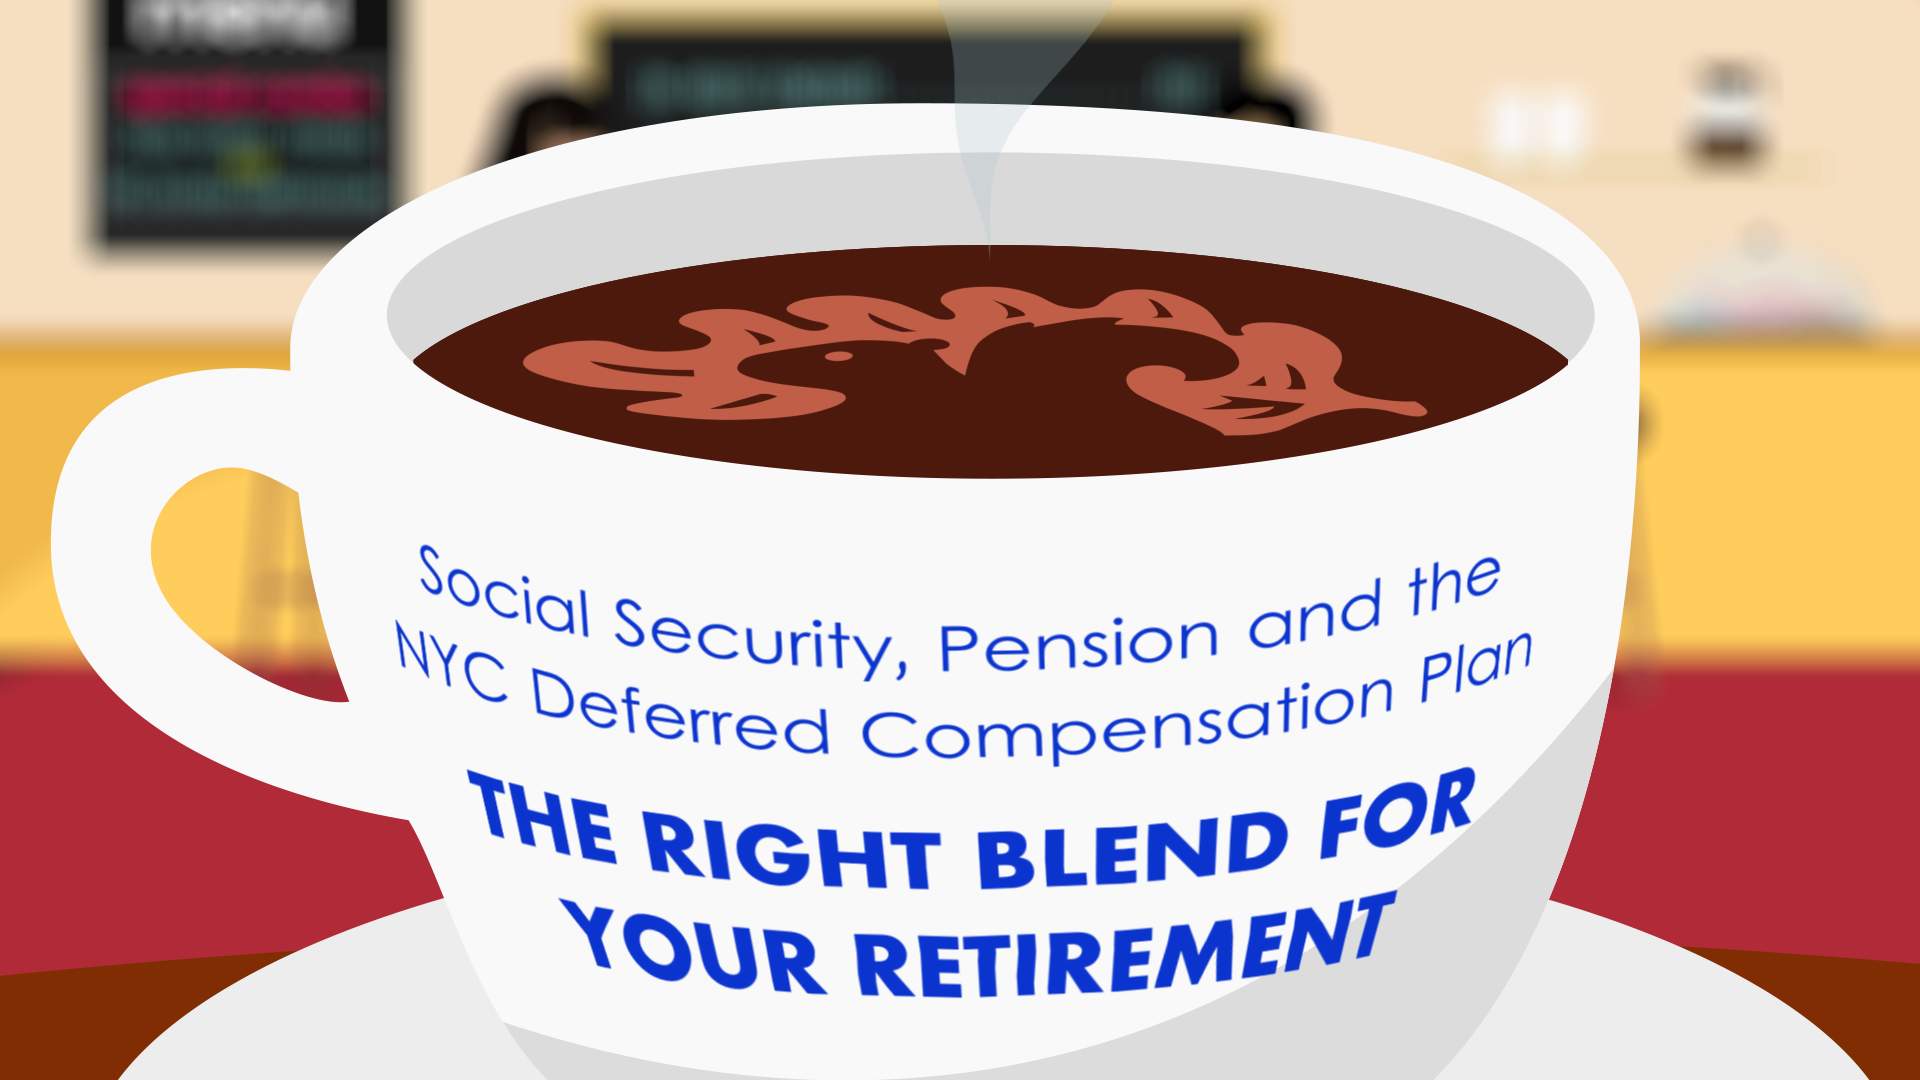 The Right Blend for Your Retirement